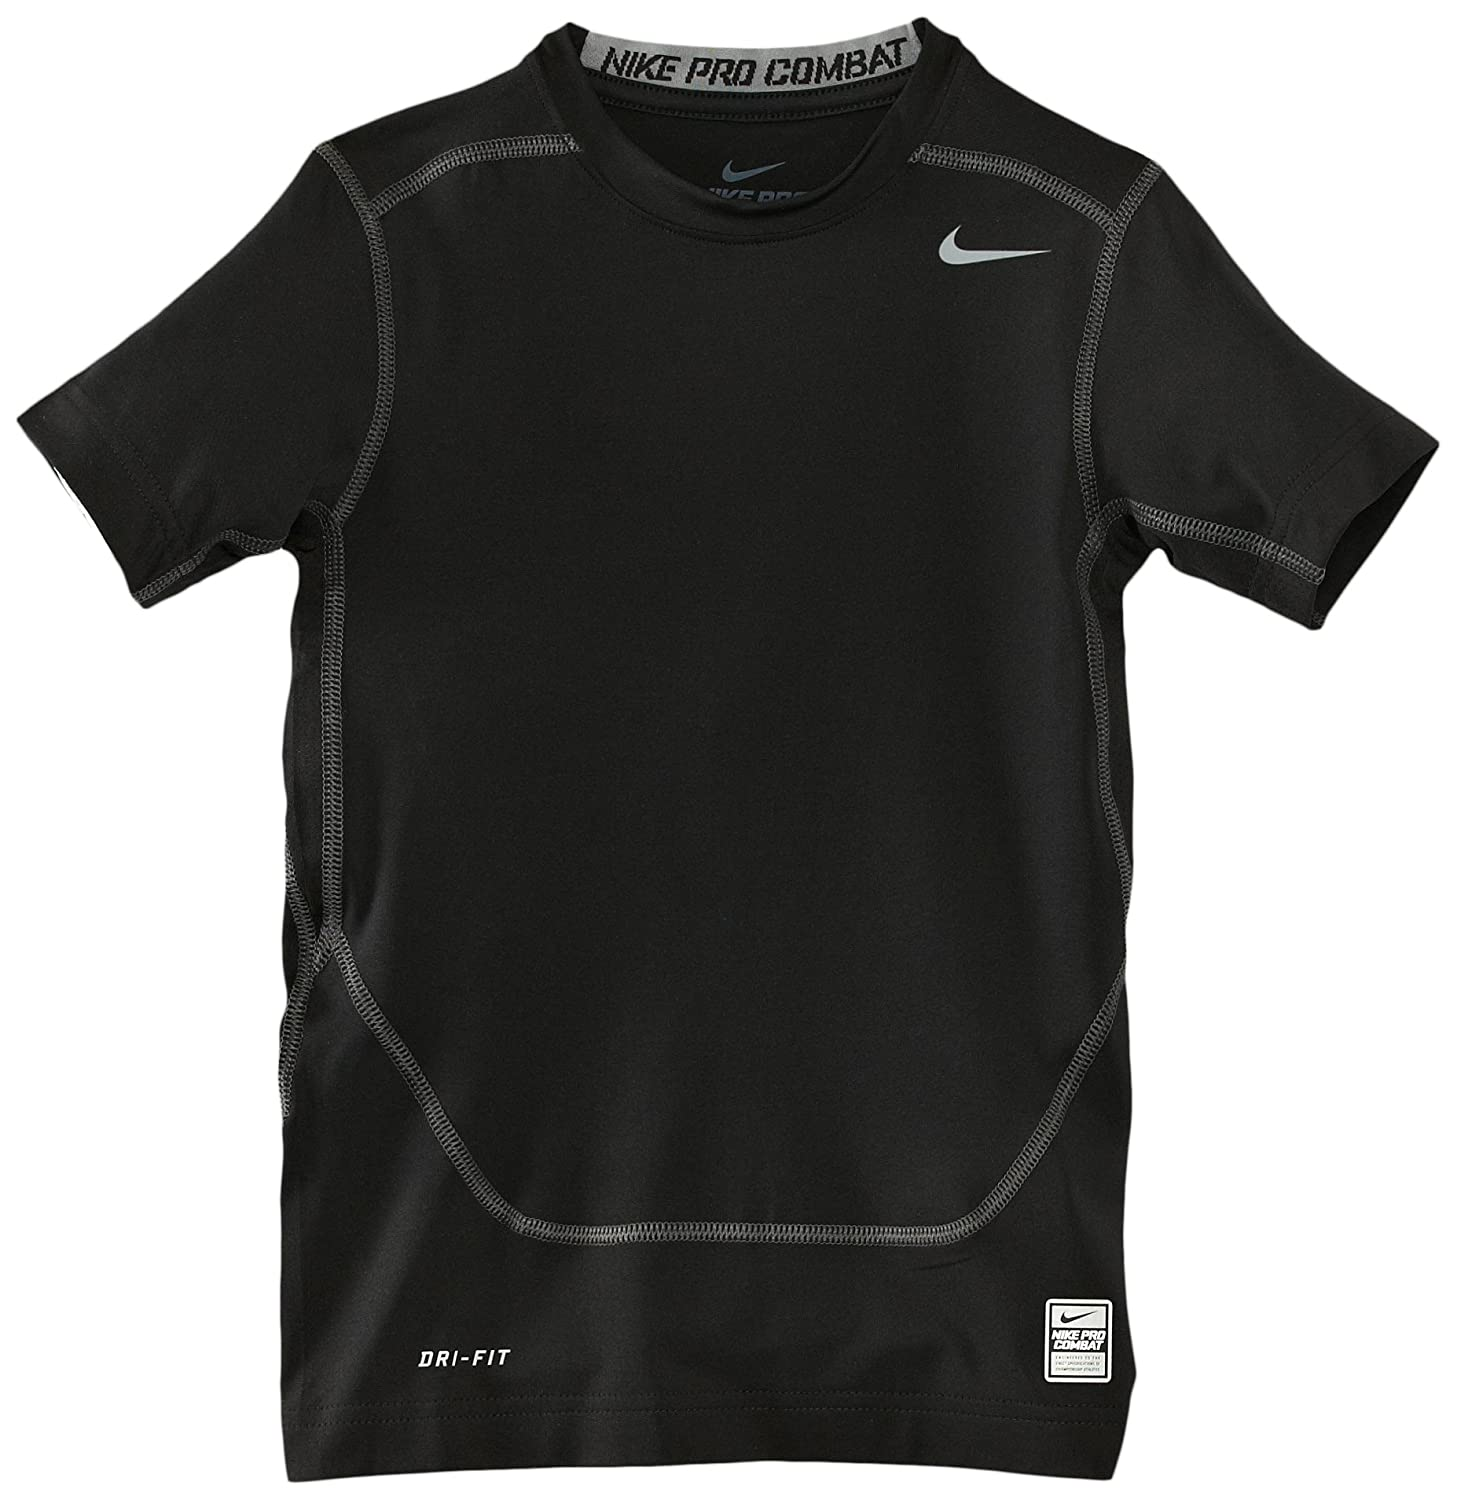 64139378bdc0d 30%OFF Men's Nike Pro Combat Core Fitted 2.0 Short Sleeve Crew Black ...